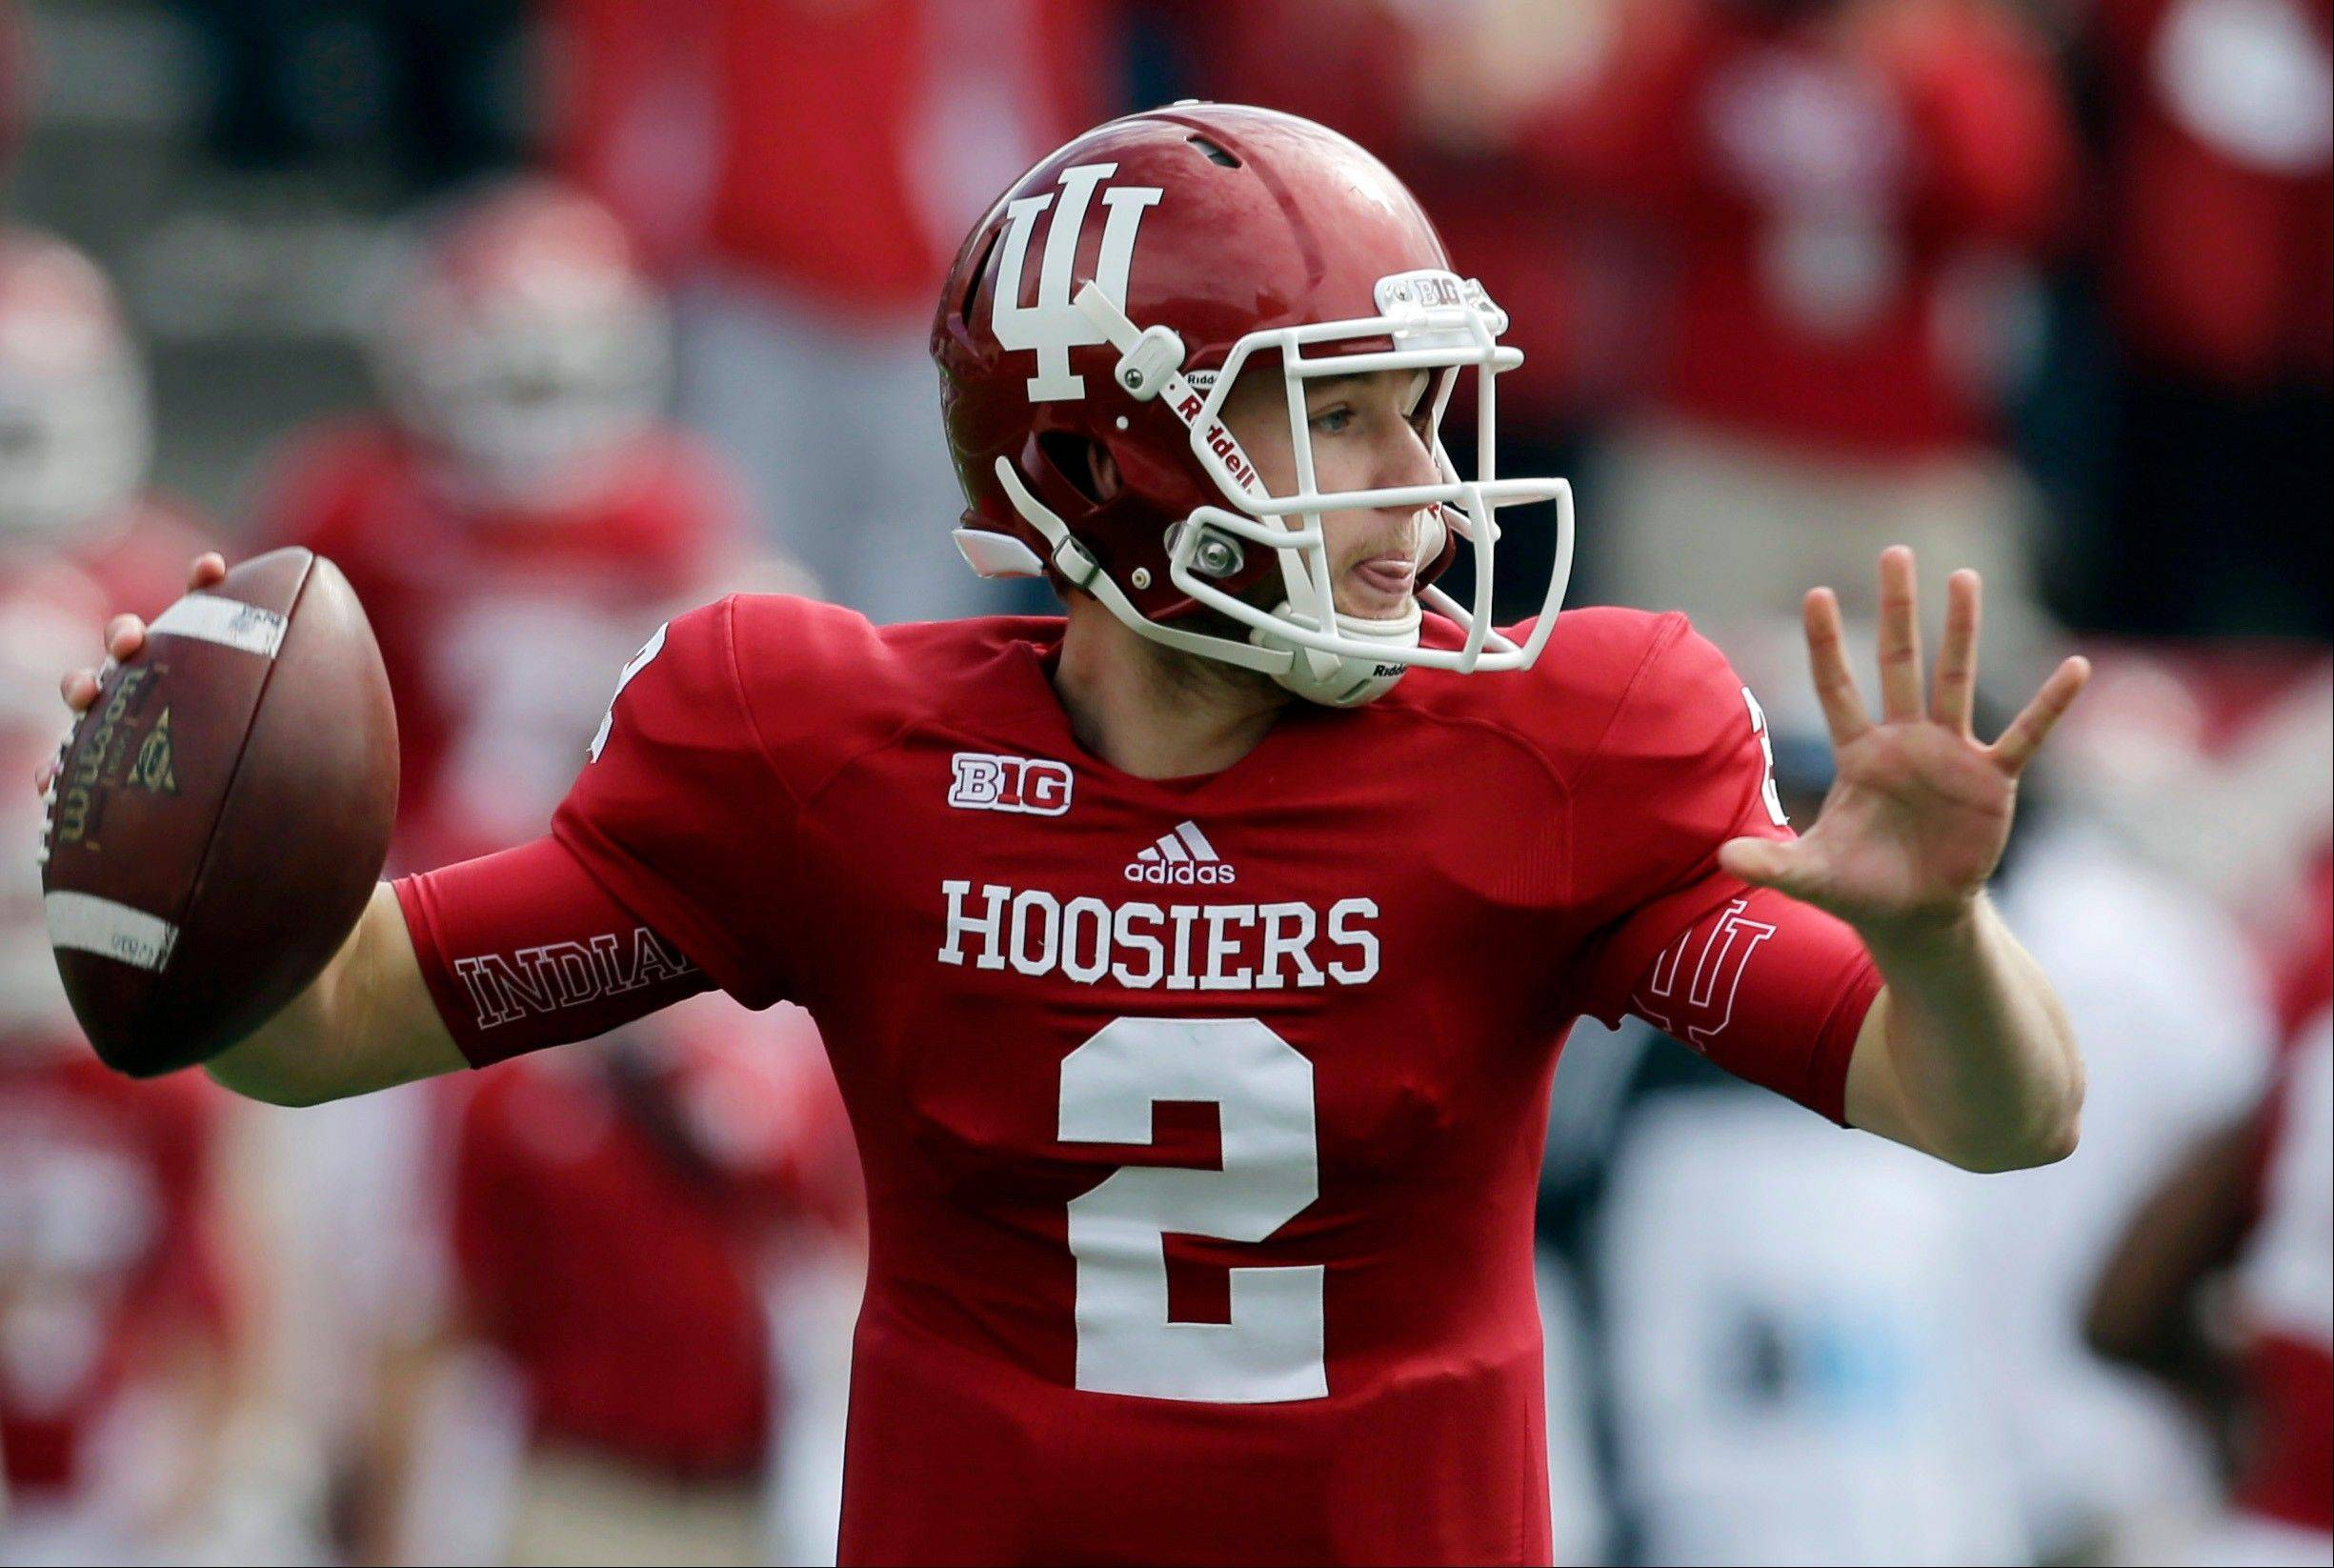 Indiana quarterback Cameron Coffman throws against Michigan State in Bloomington, Ind. Coffman's father, Paul, was an All-Pro tight end with the Green Bay Packers in the 1980s. Indiana hosts Wisconsin on Saturday.